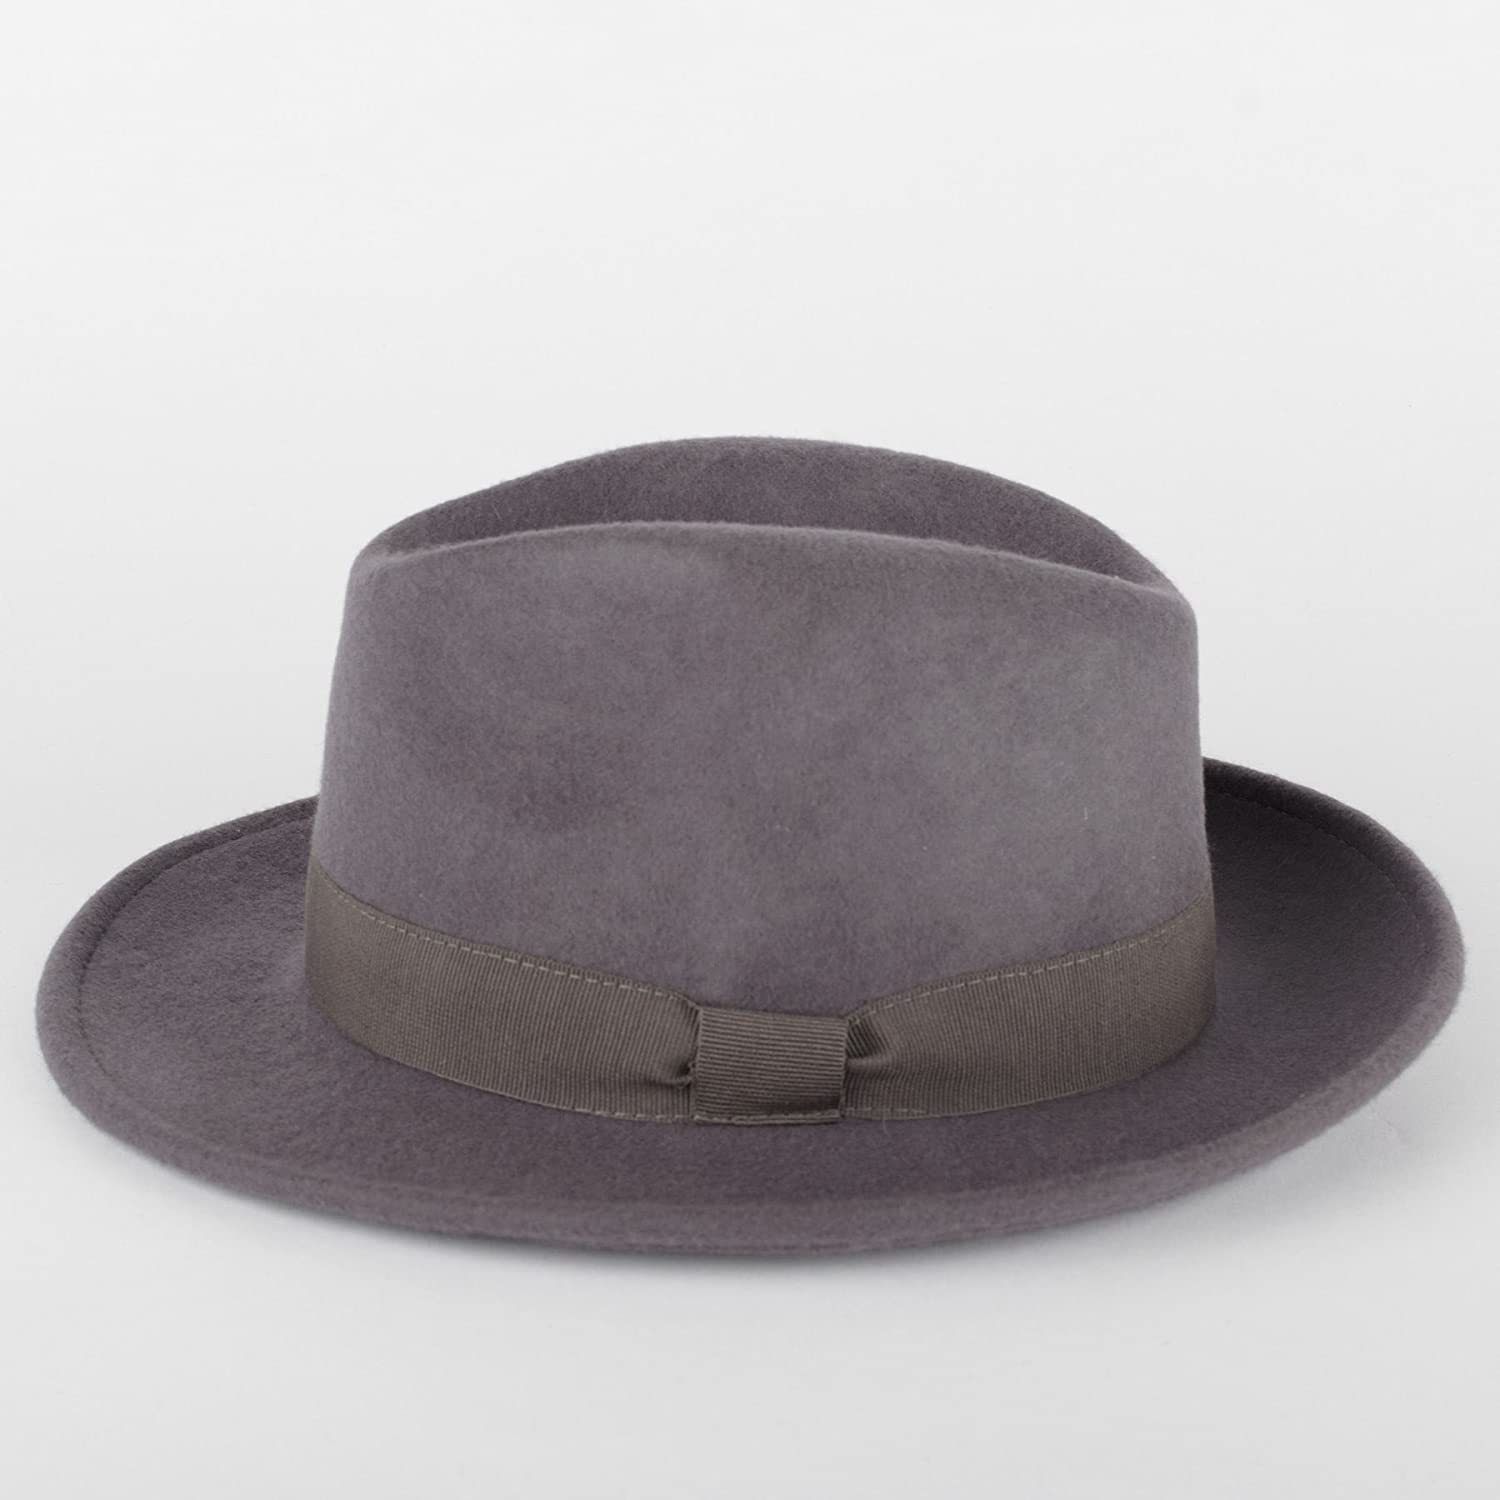 Wool Trilby Fedora Hat Handmade in Italy